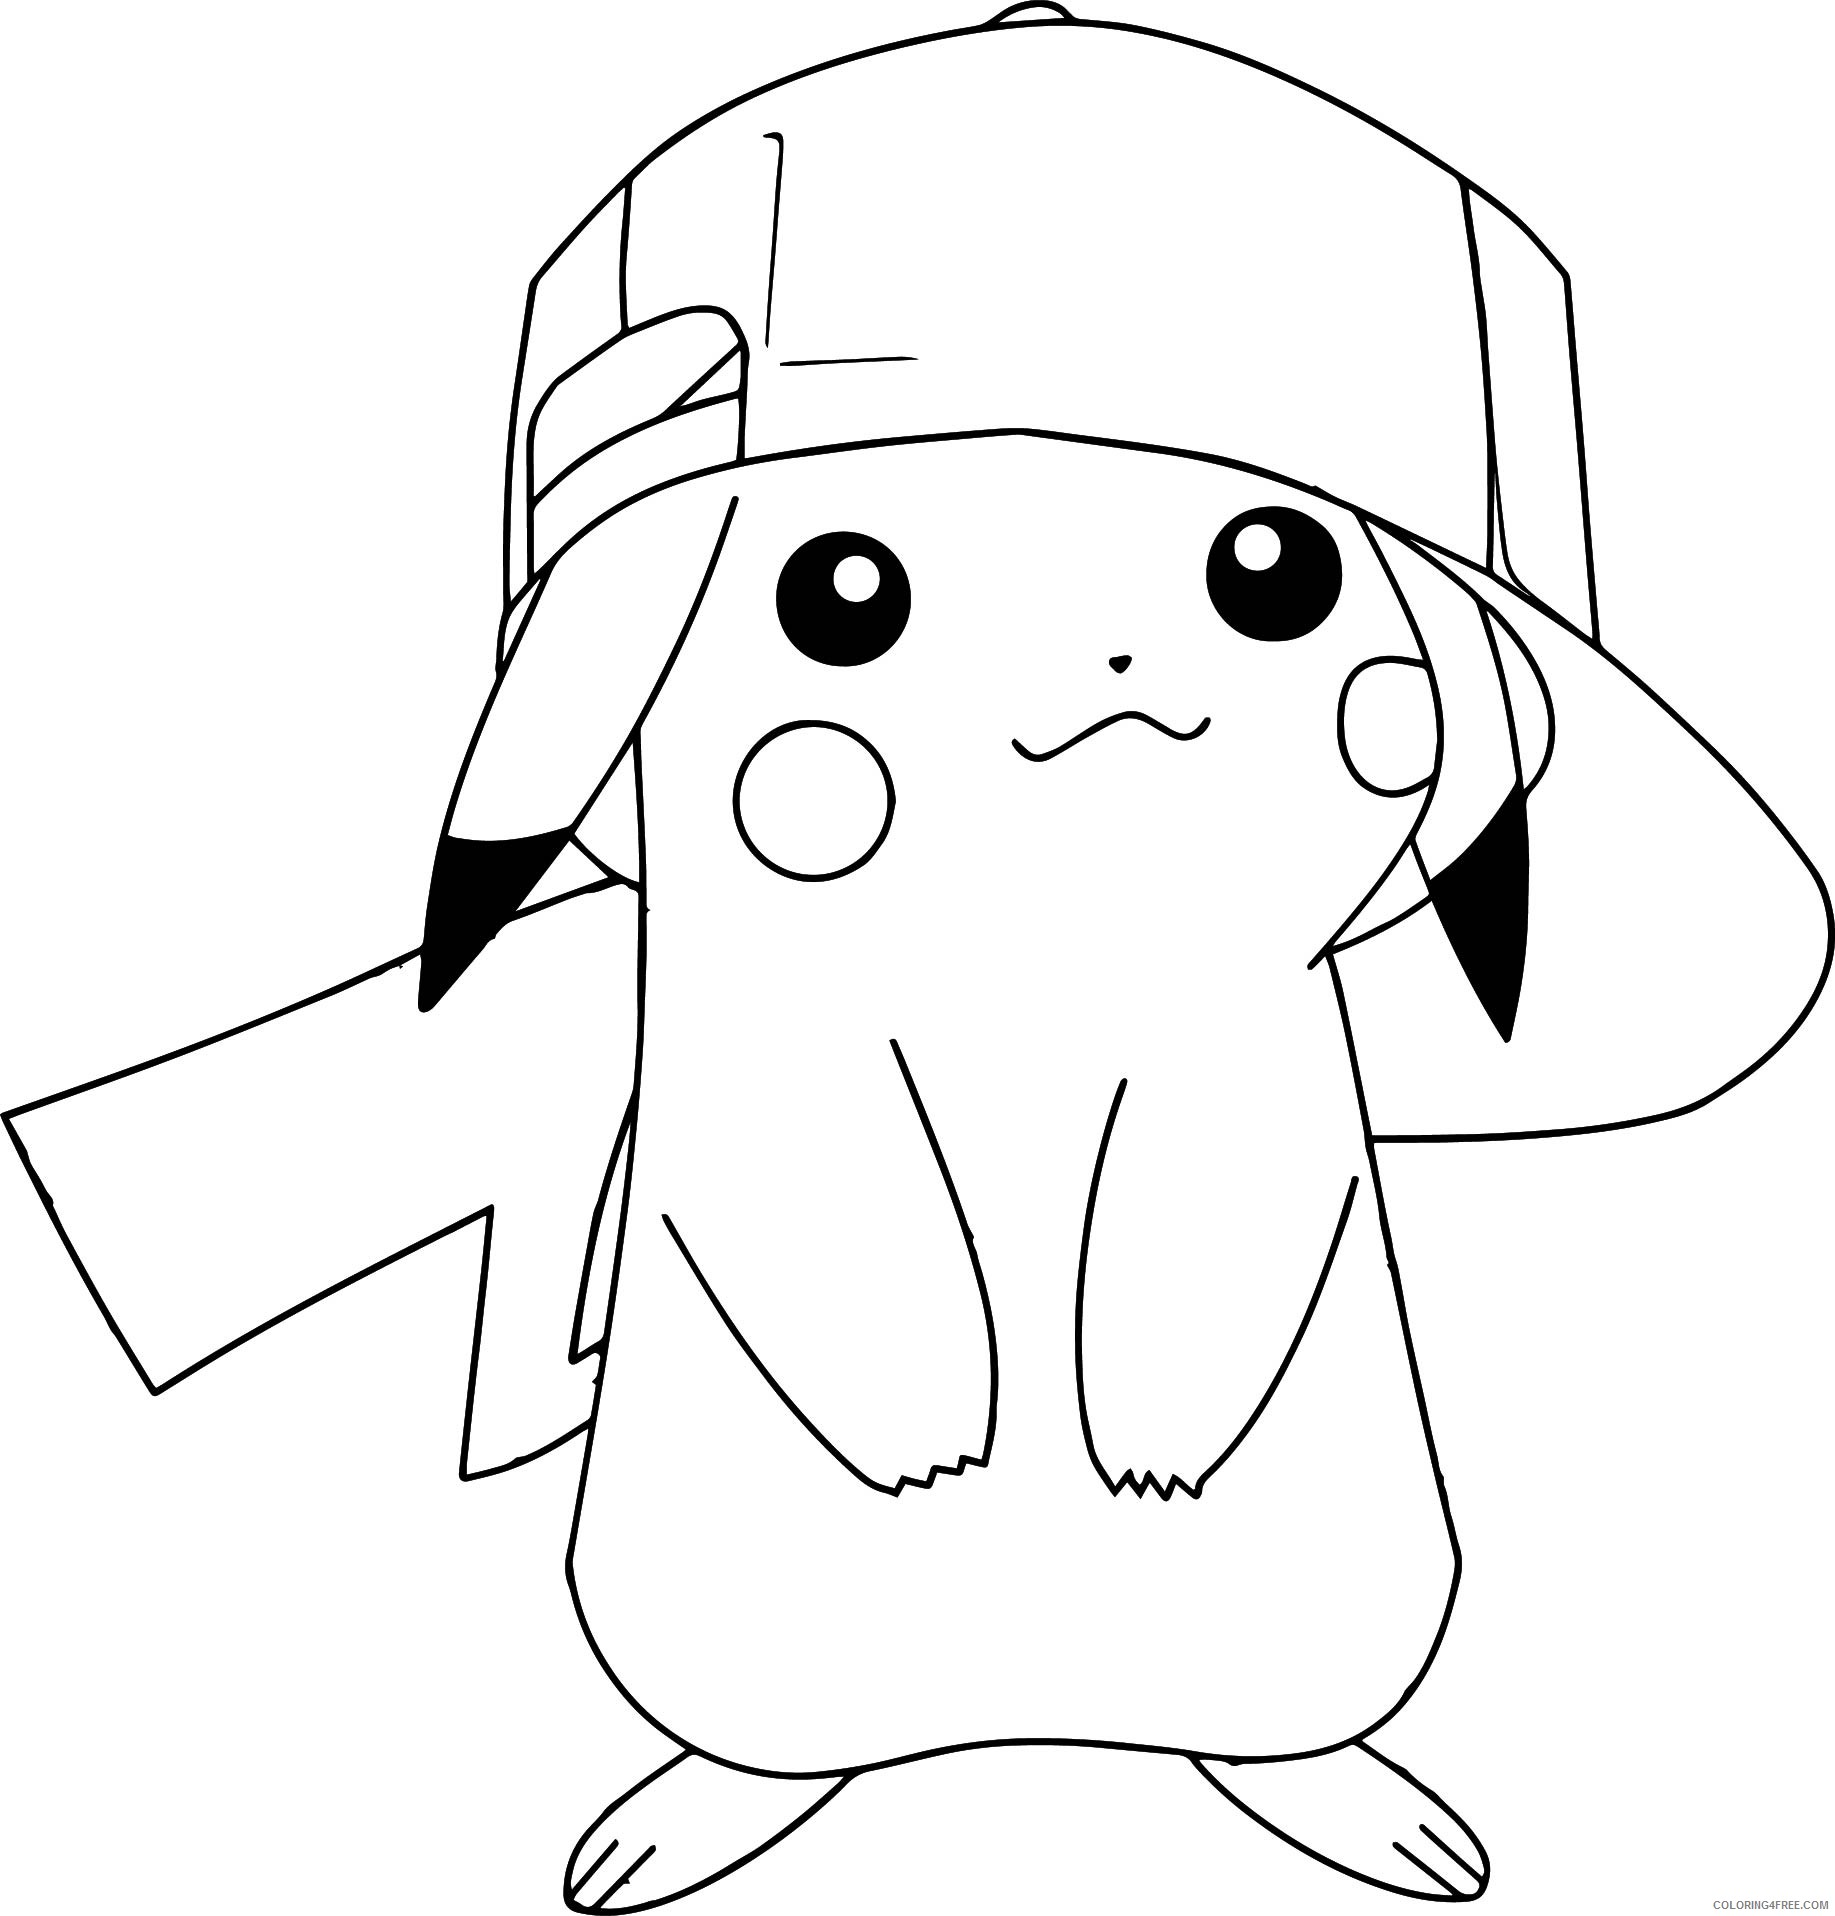 pokemon coloring pages axew pokemon black and white coloring pages ... | 1916x1835